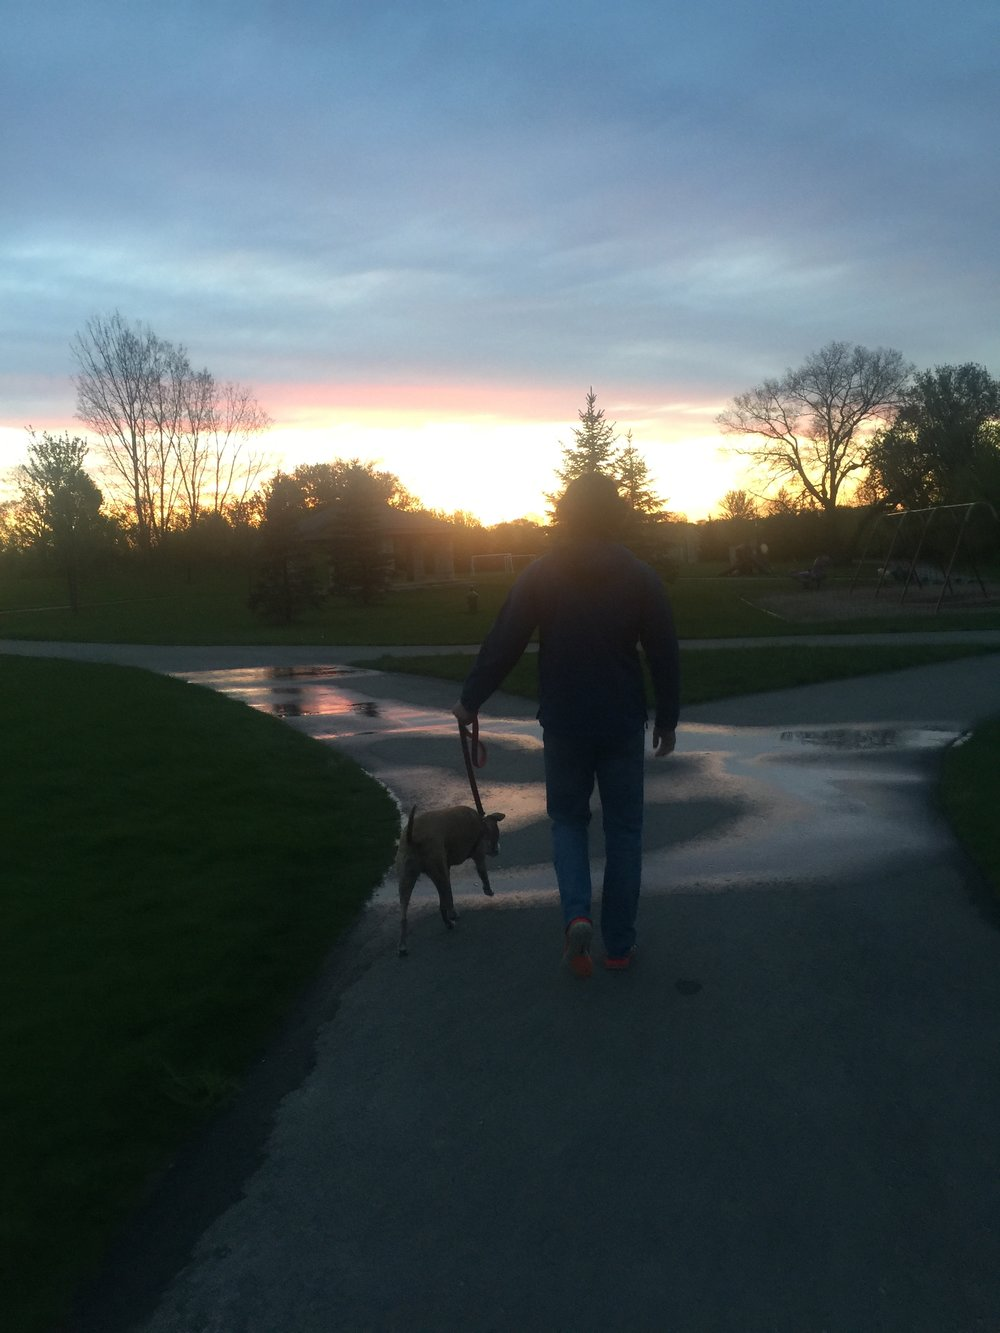 From our walk on Friday night! The sky was so beautiful and I love taking walks with the whole gang!